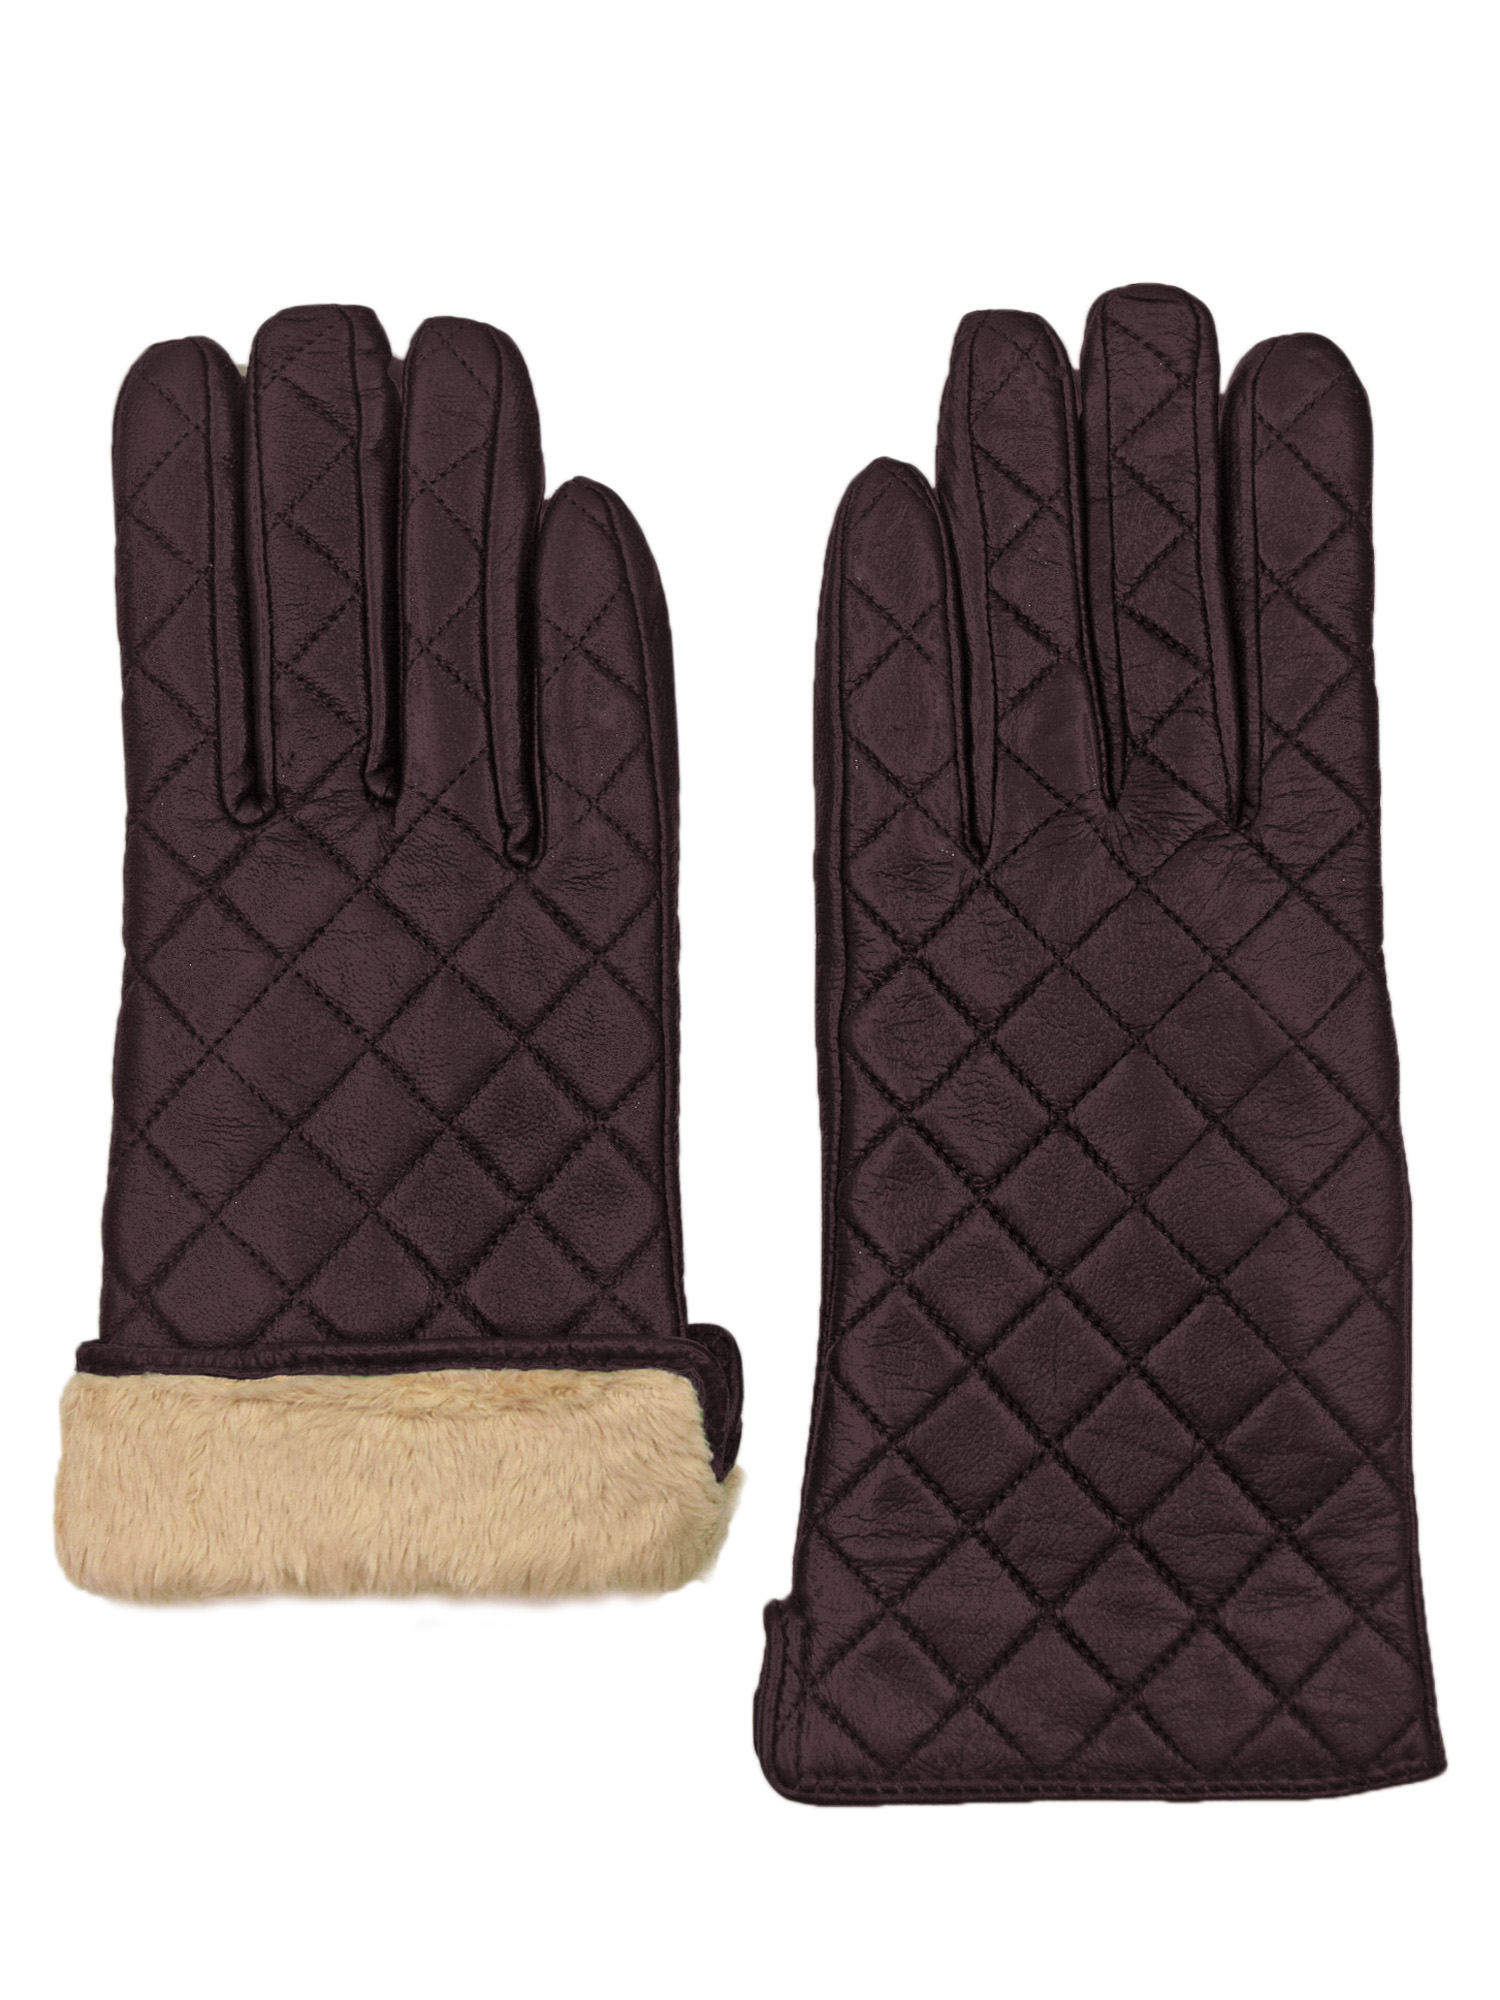 Giromy-Samoni-Womens-Warm-Winter-Leather-Quilted-Dress-Driving-Gloves-Brown thumbnail 14